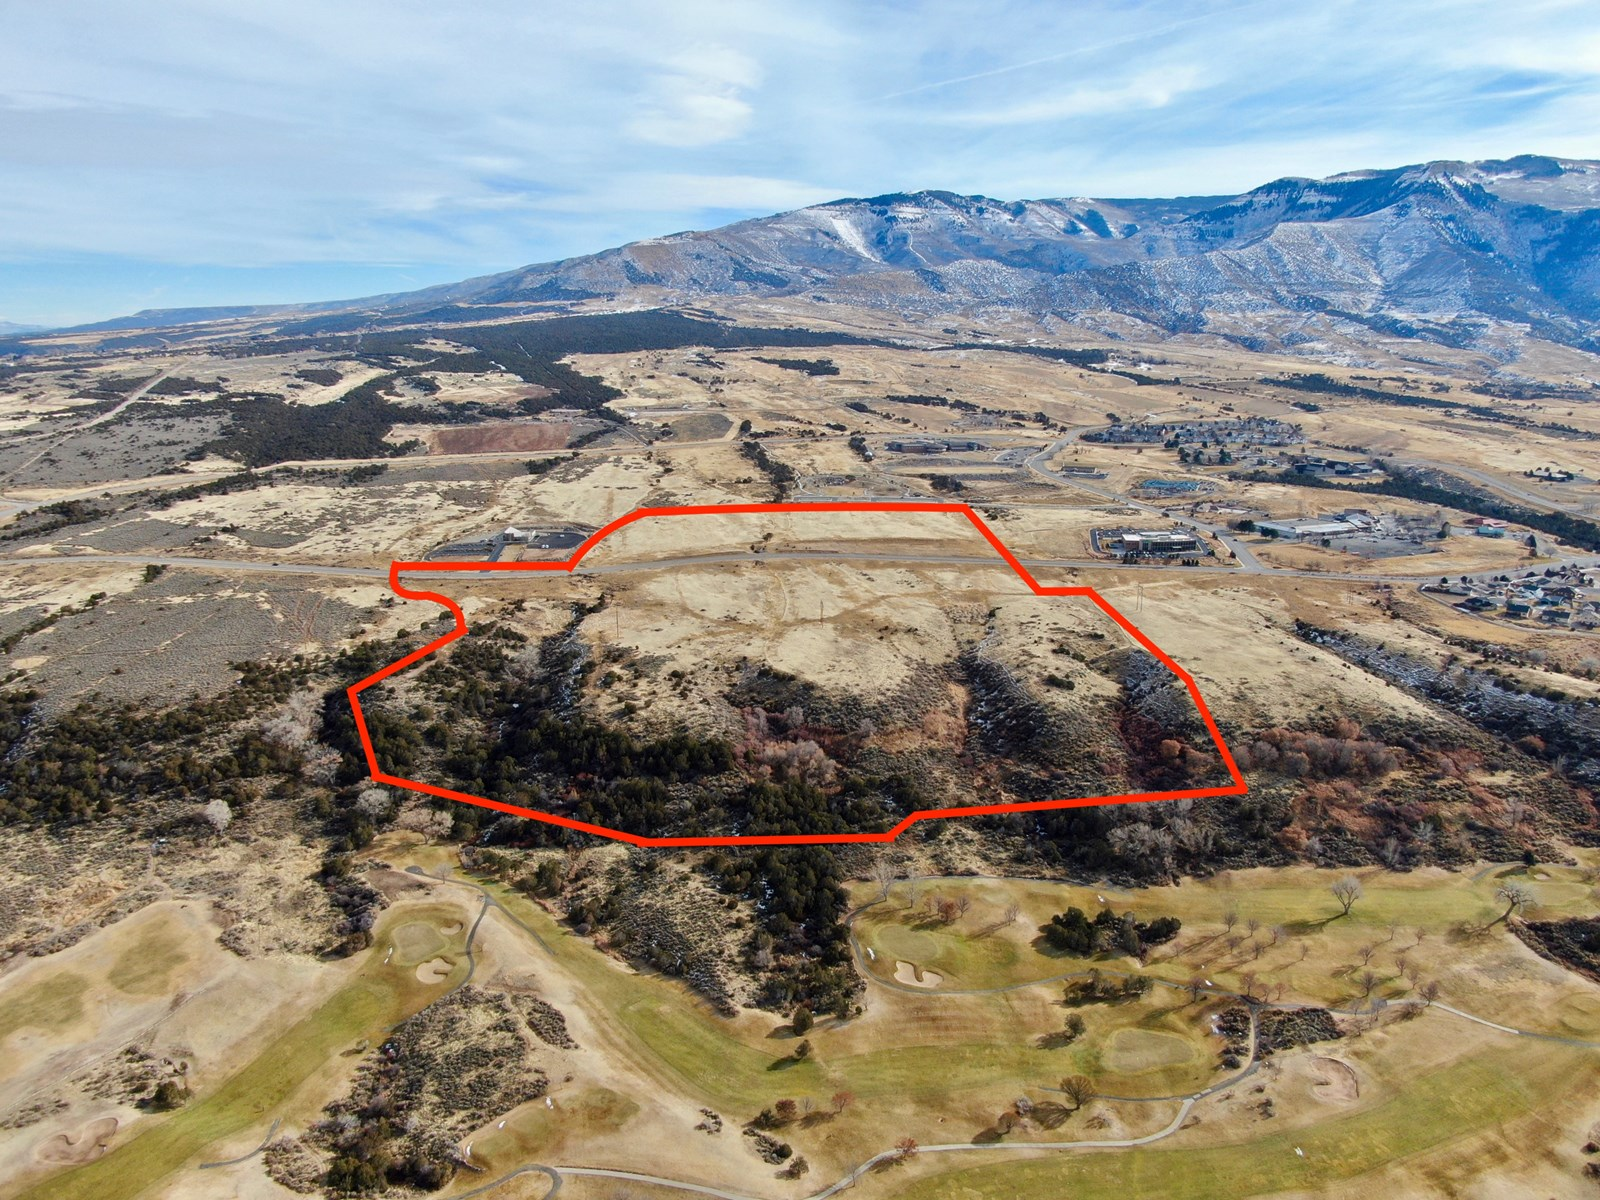 Residential Development Land For Sale, Battlement Mesa CO